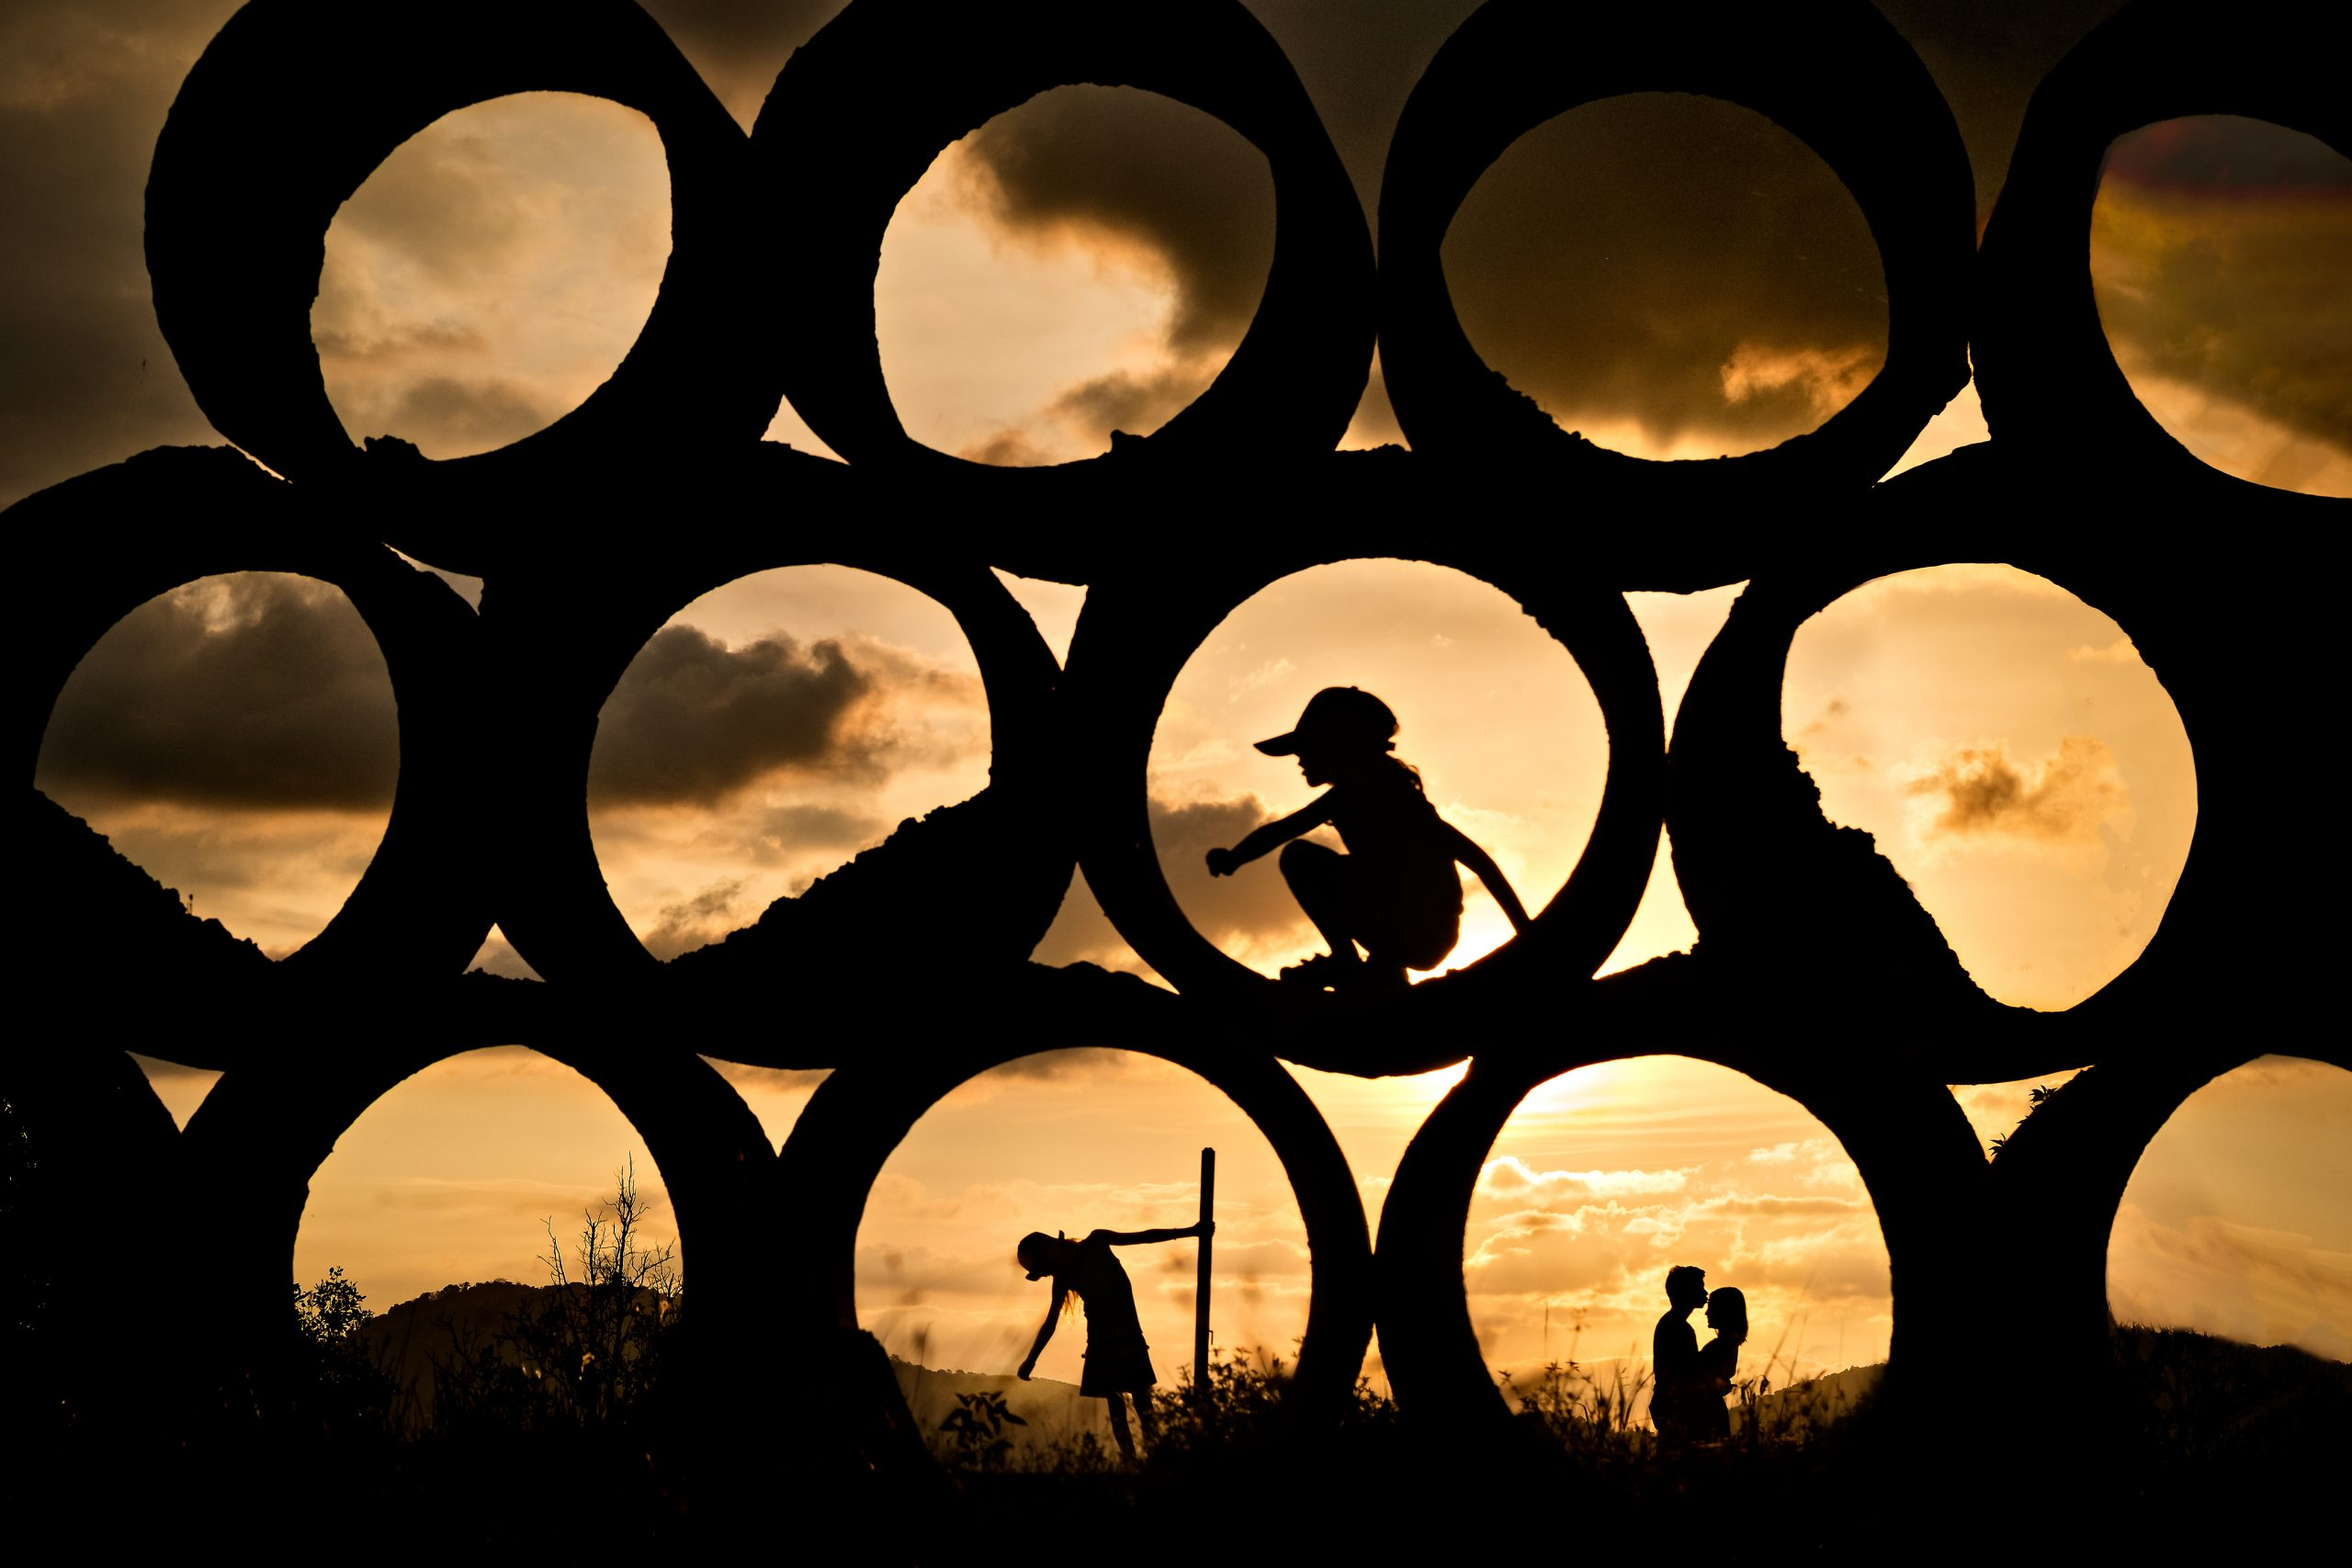 Couple in love kissing with kids playing on construction site silhouetted at sunset in Thailand